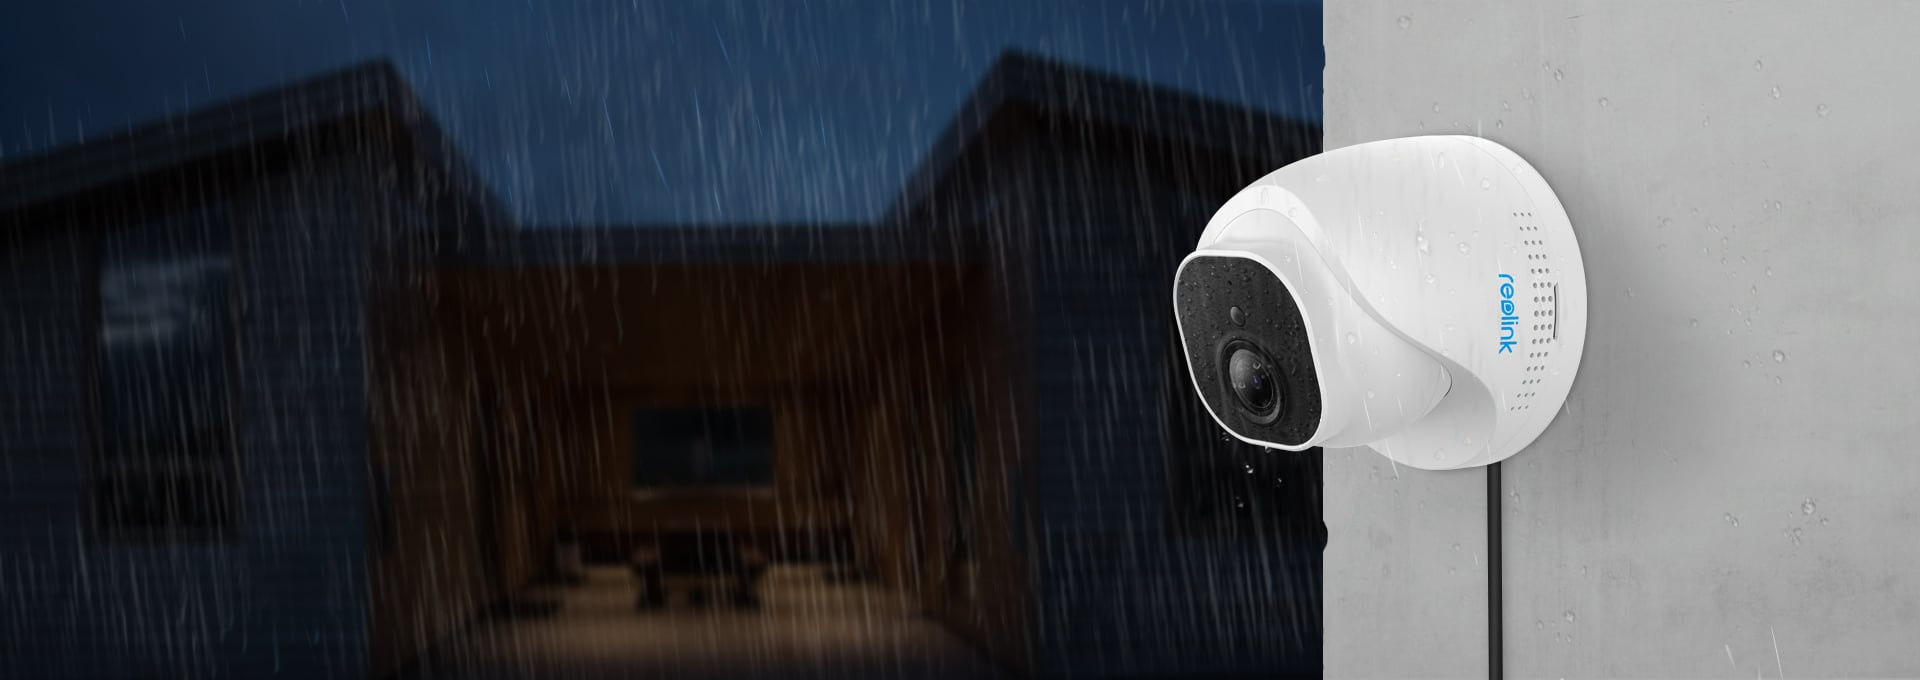 Waterproof 4K PoE 8-Channel CCTV System Indoors and Outdoors